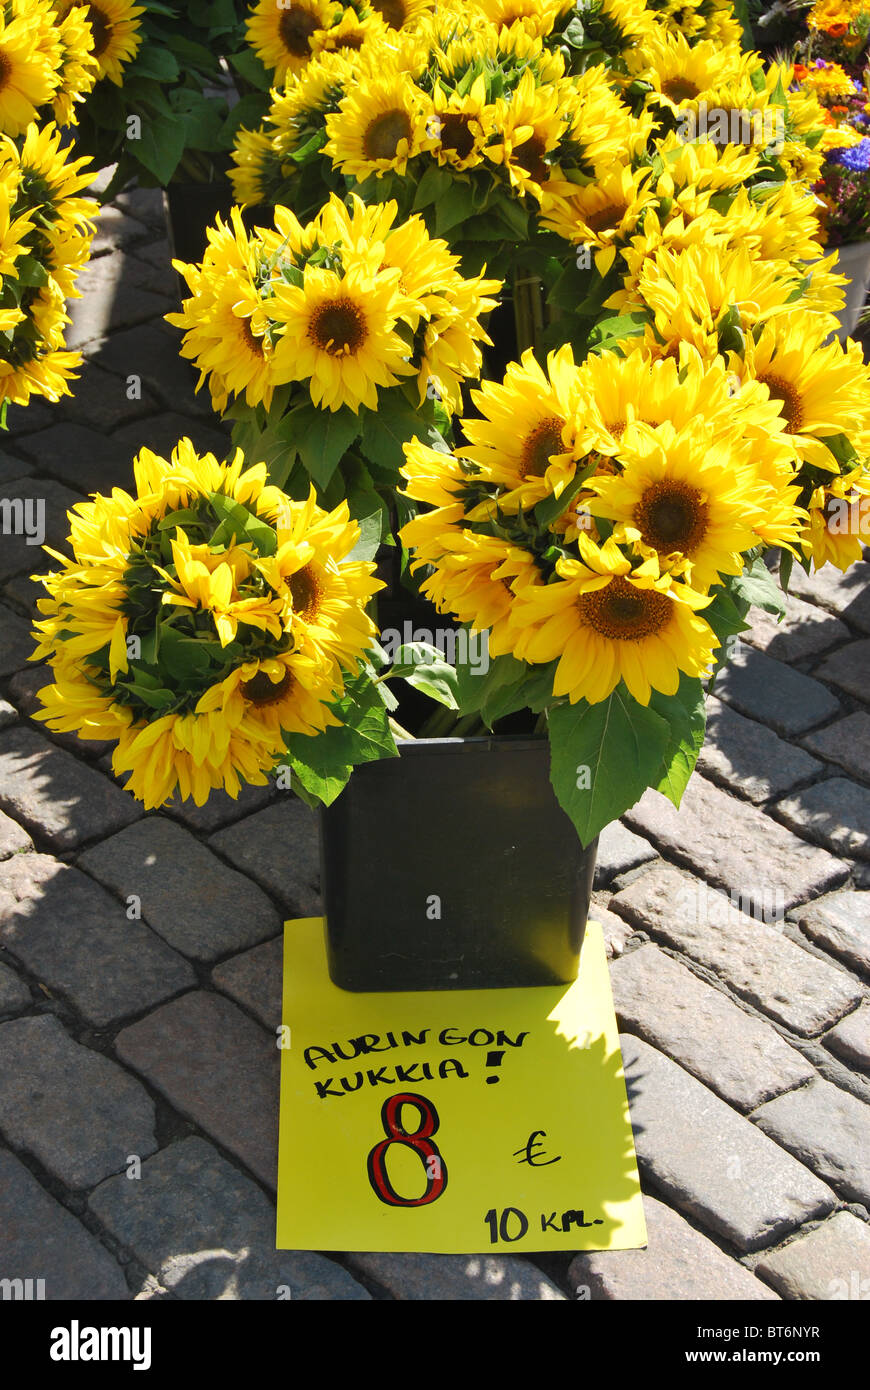 Sunflowers for sale at the Market Square (Kauppatori) in Helsinki, Finland. - Stock Image